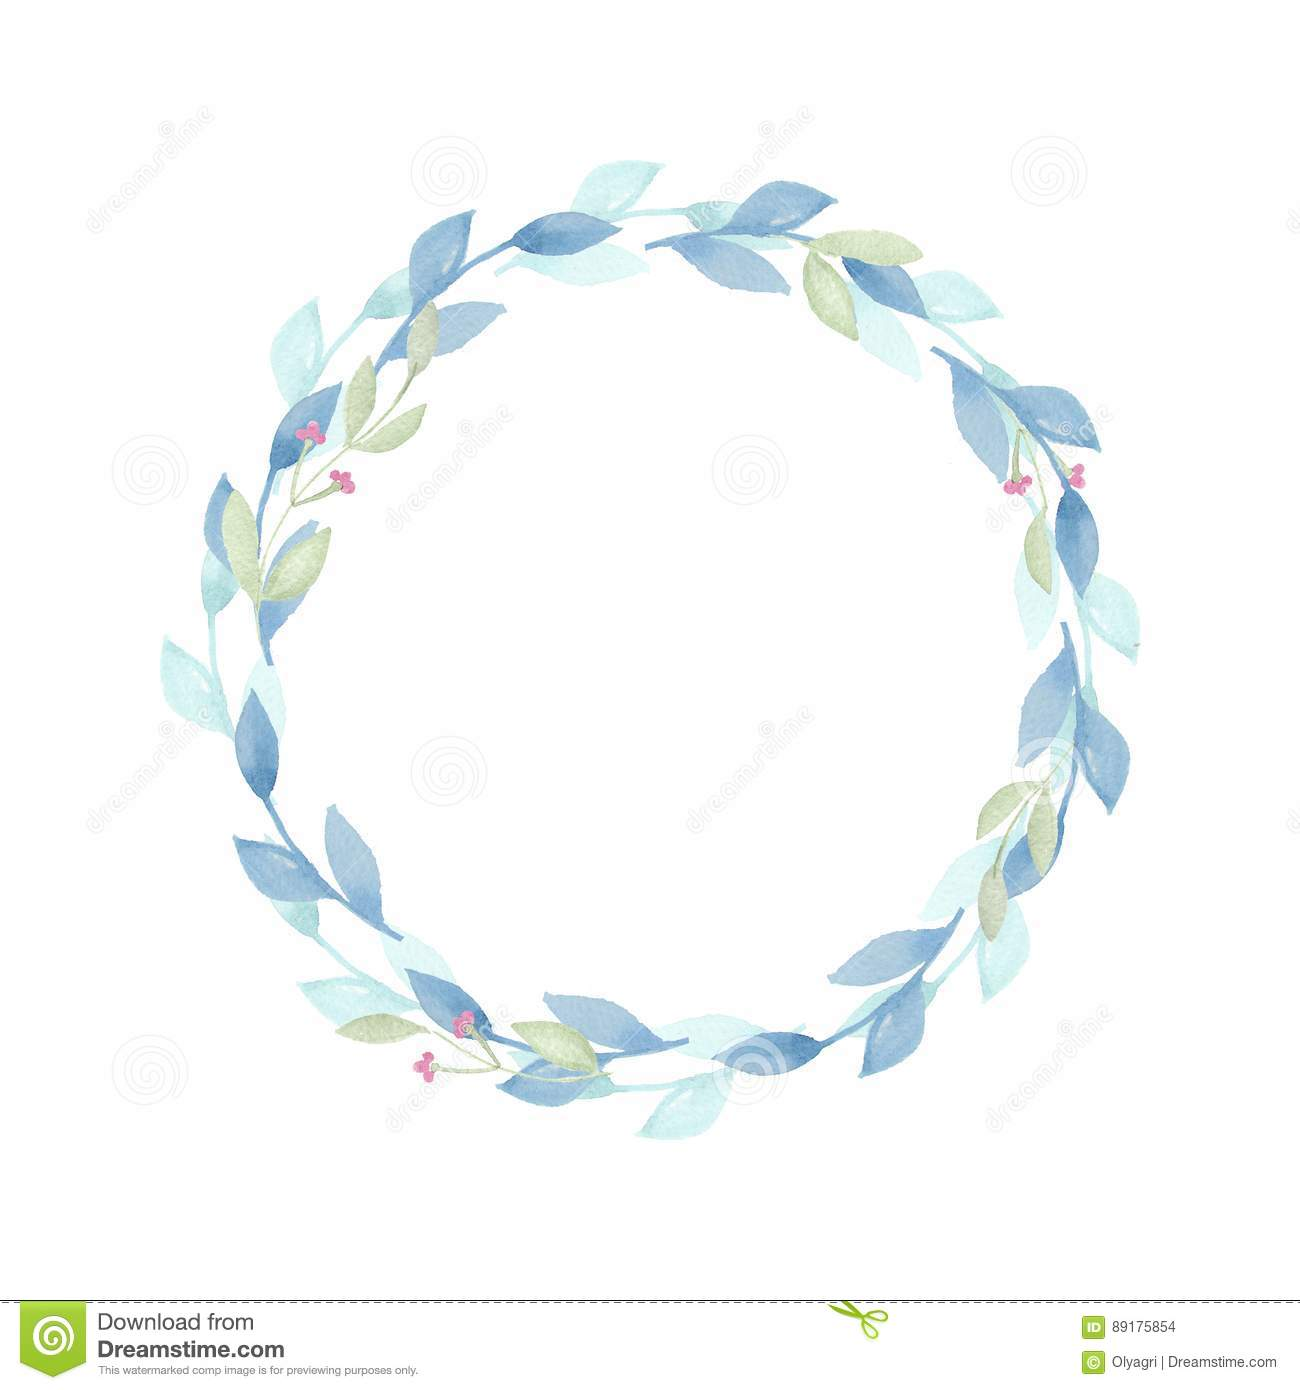 Watercolor floral wreath with blue leaves stock illustration watercolor floral wreath with blue leaves izmirmasajfo Gallery